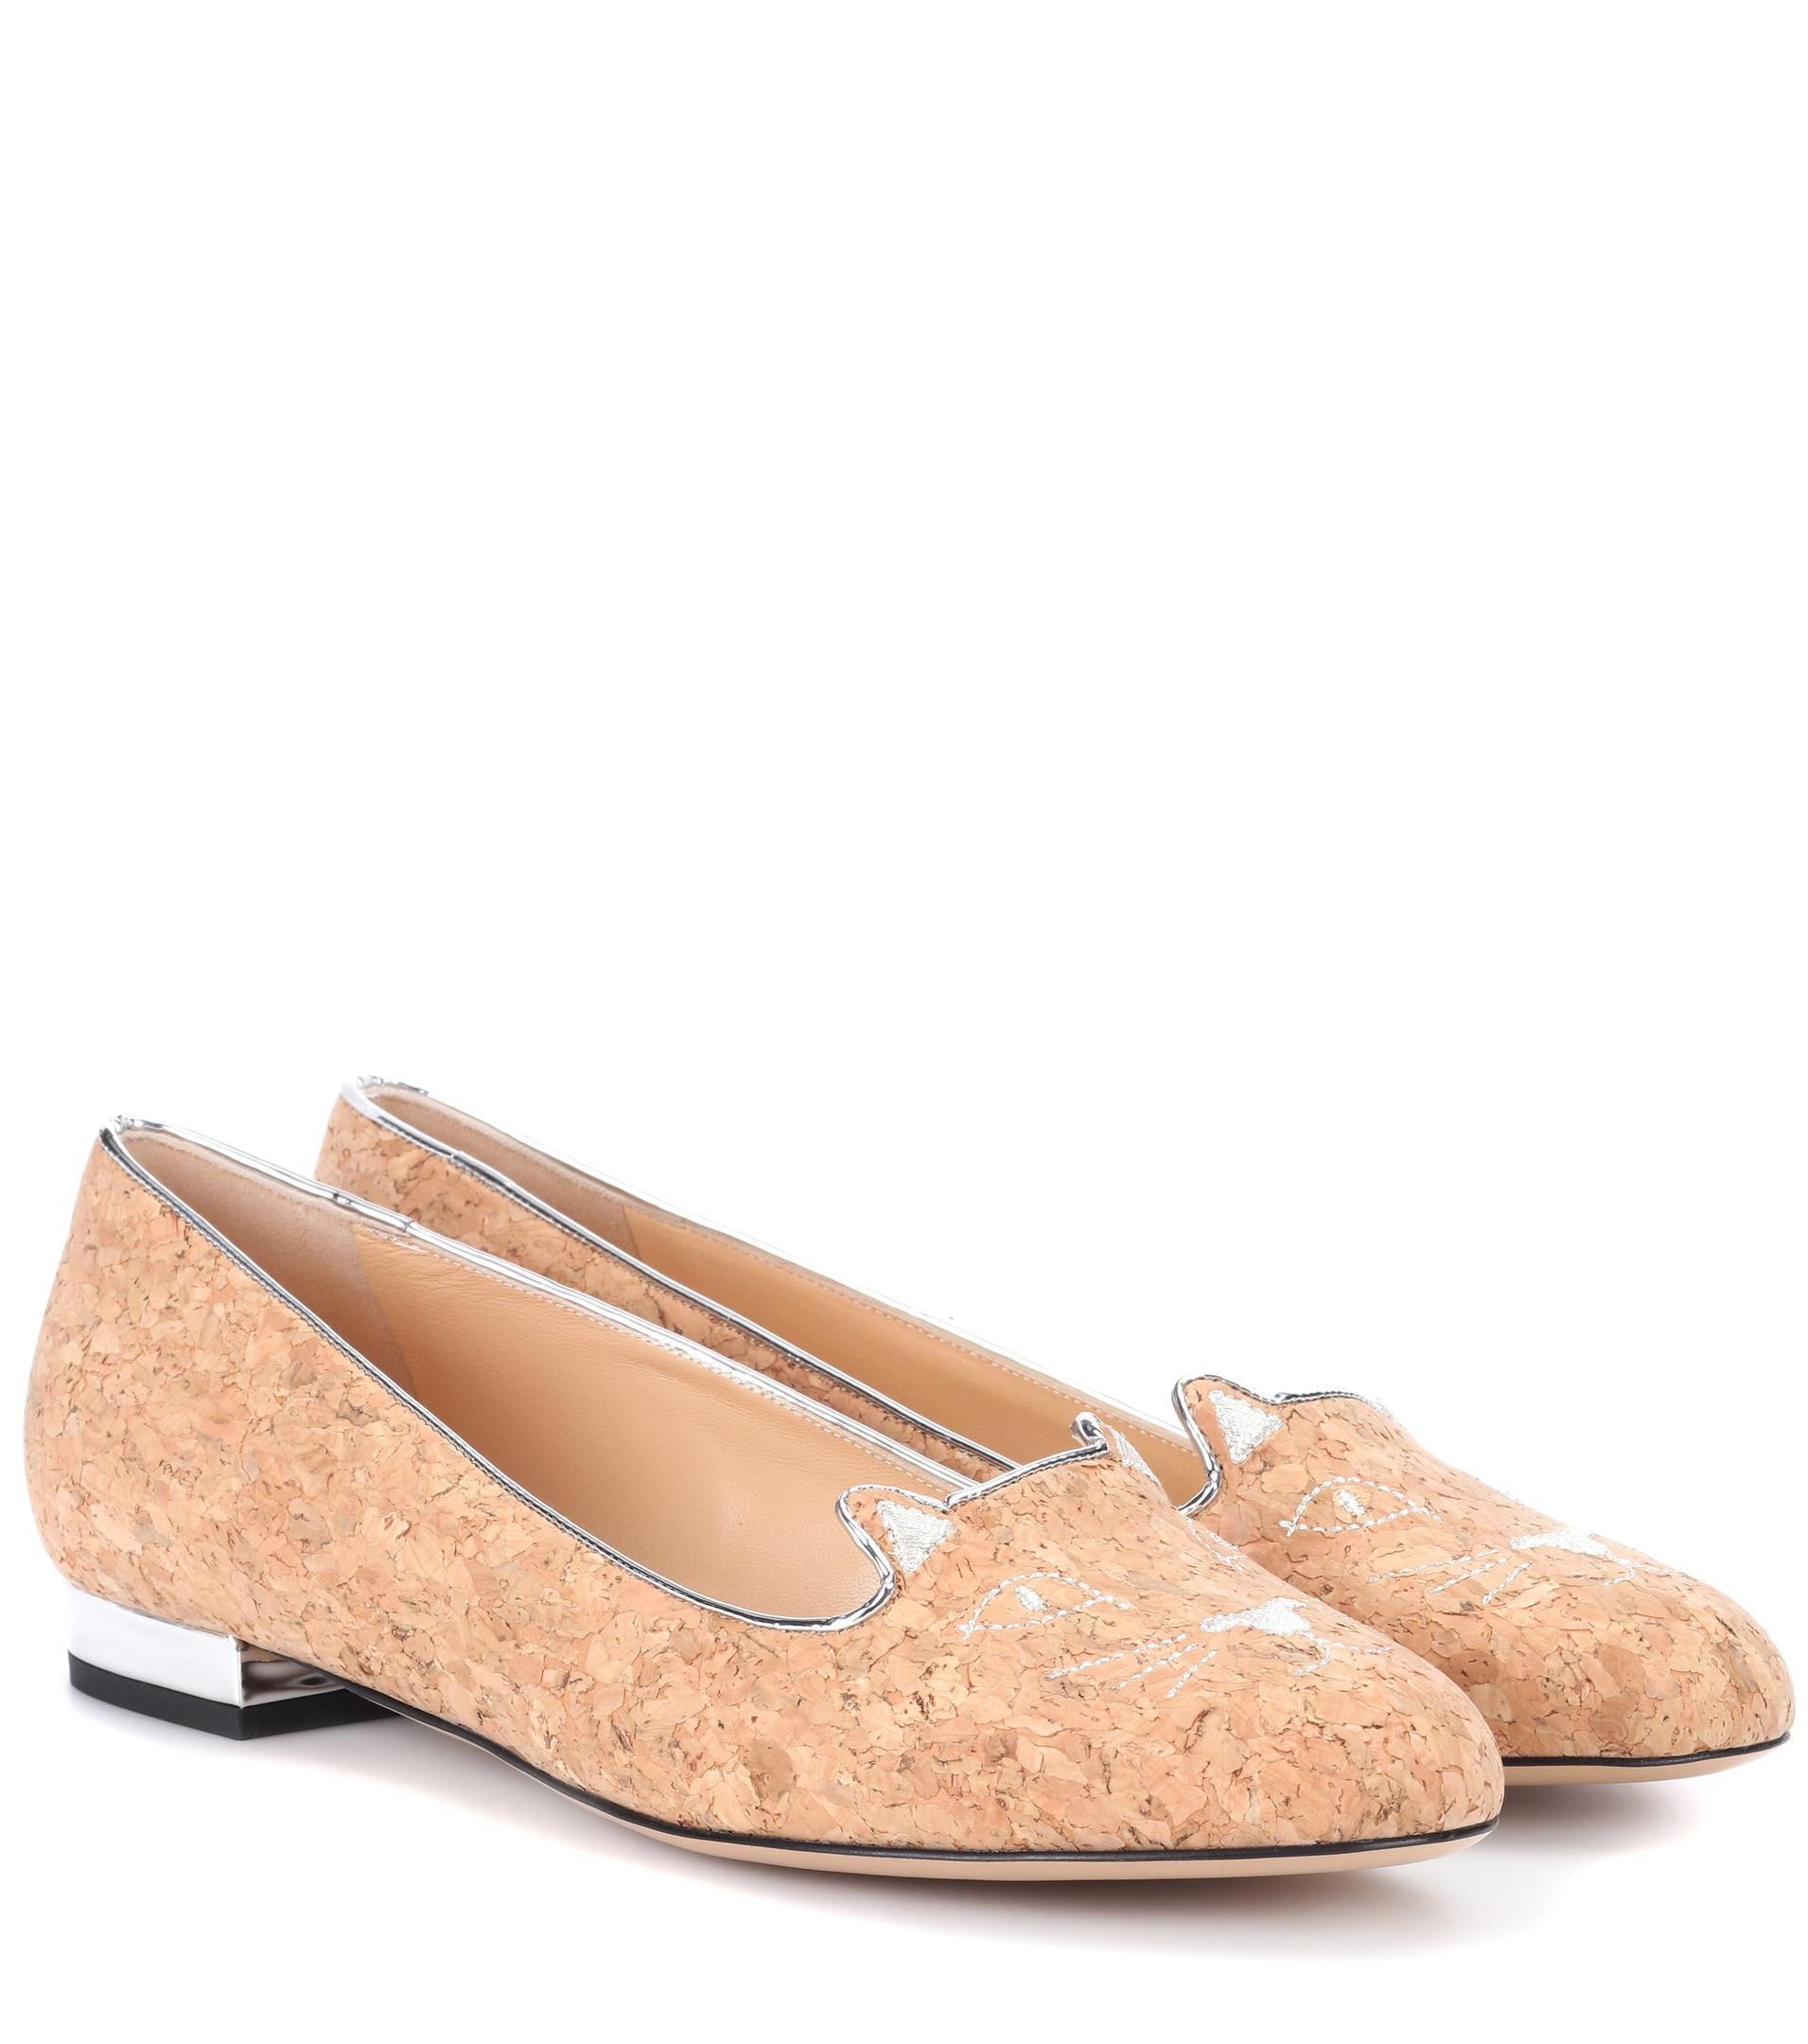 Charlotte Olympia Embroidered Patterned Loafers get authentic for sale discount cheap price buy cheap get to buy buy cheap sast geniue stockist TtjmBj